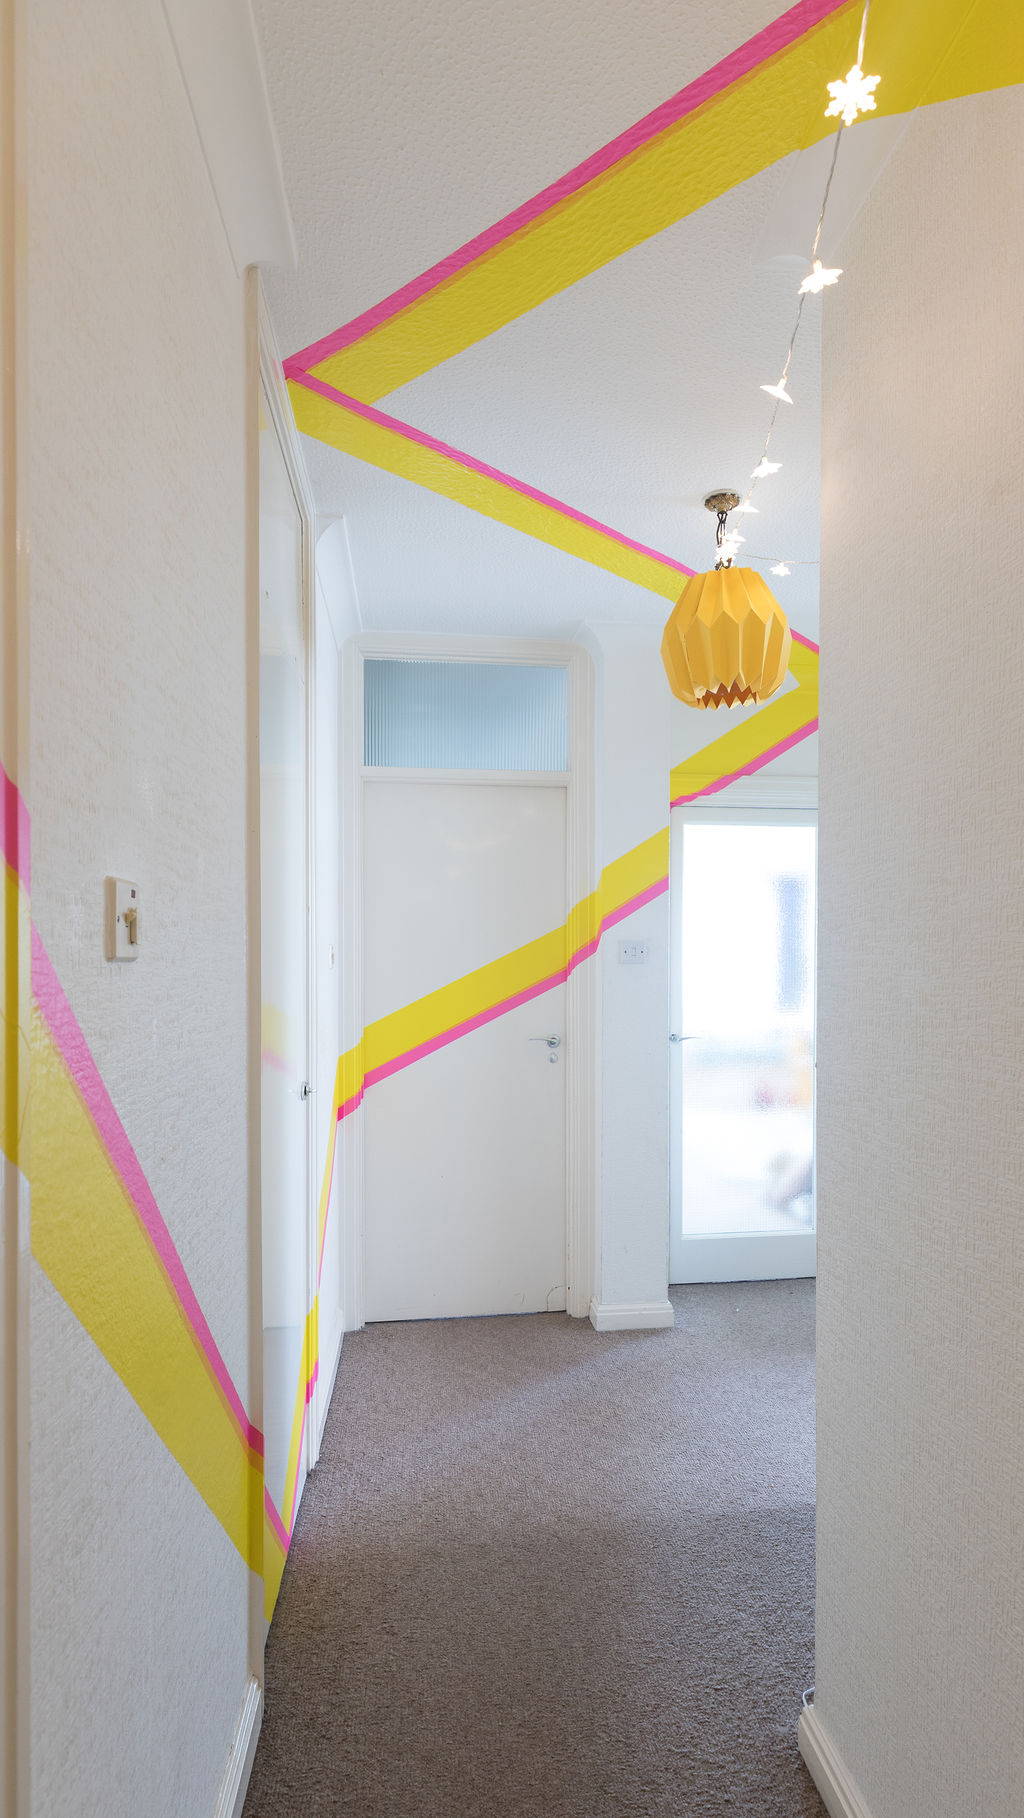 Colourful Washi tape adds a dash of colour and sense of real fun to this entryway. Renovation by Absolute Project Management.